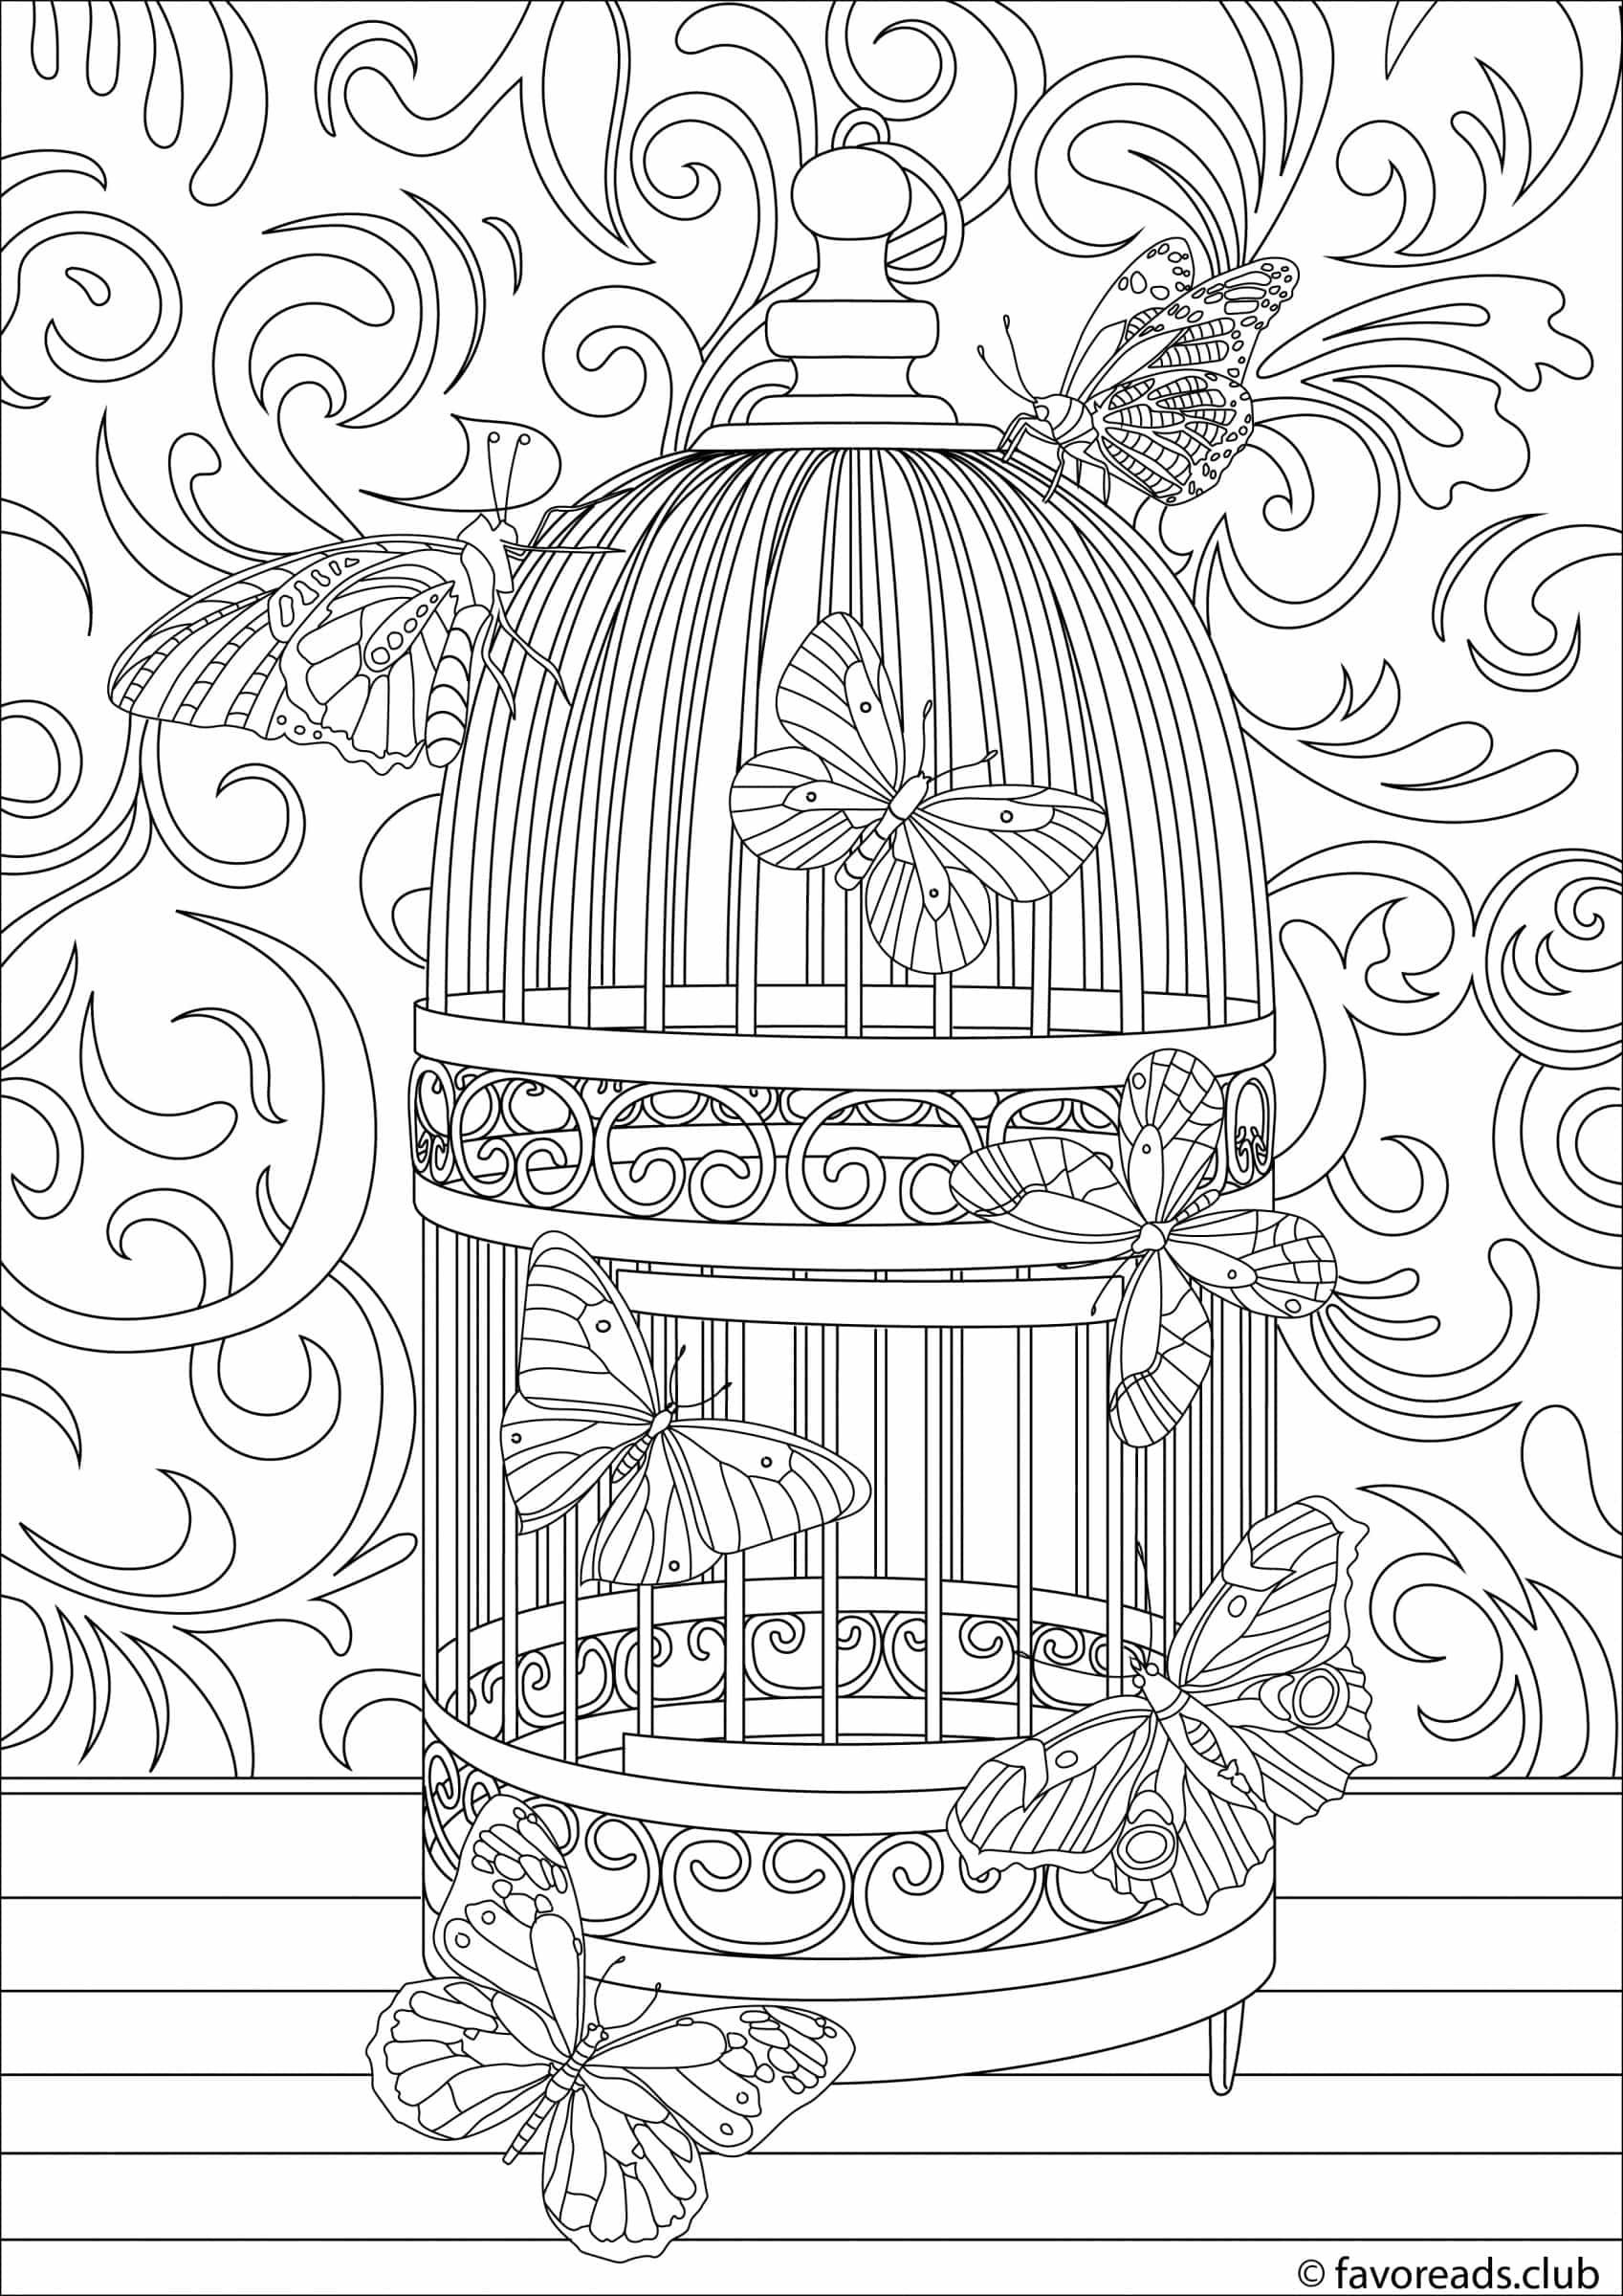 free printable birdhouse coloring pages bird nest coloring page at getdrawings free download printable free pages birdhouse coloring